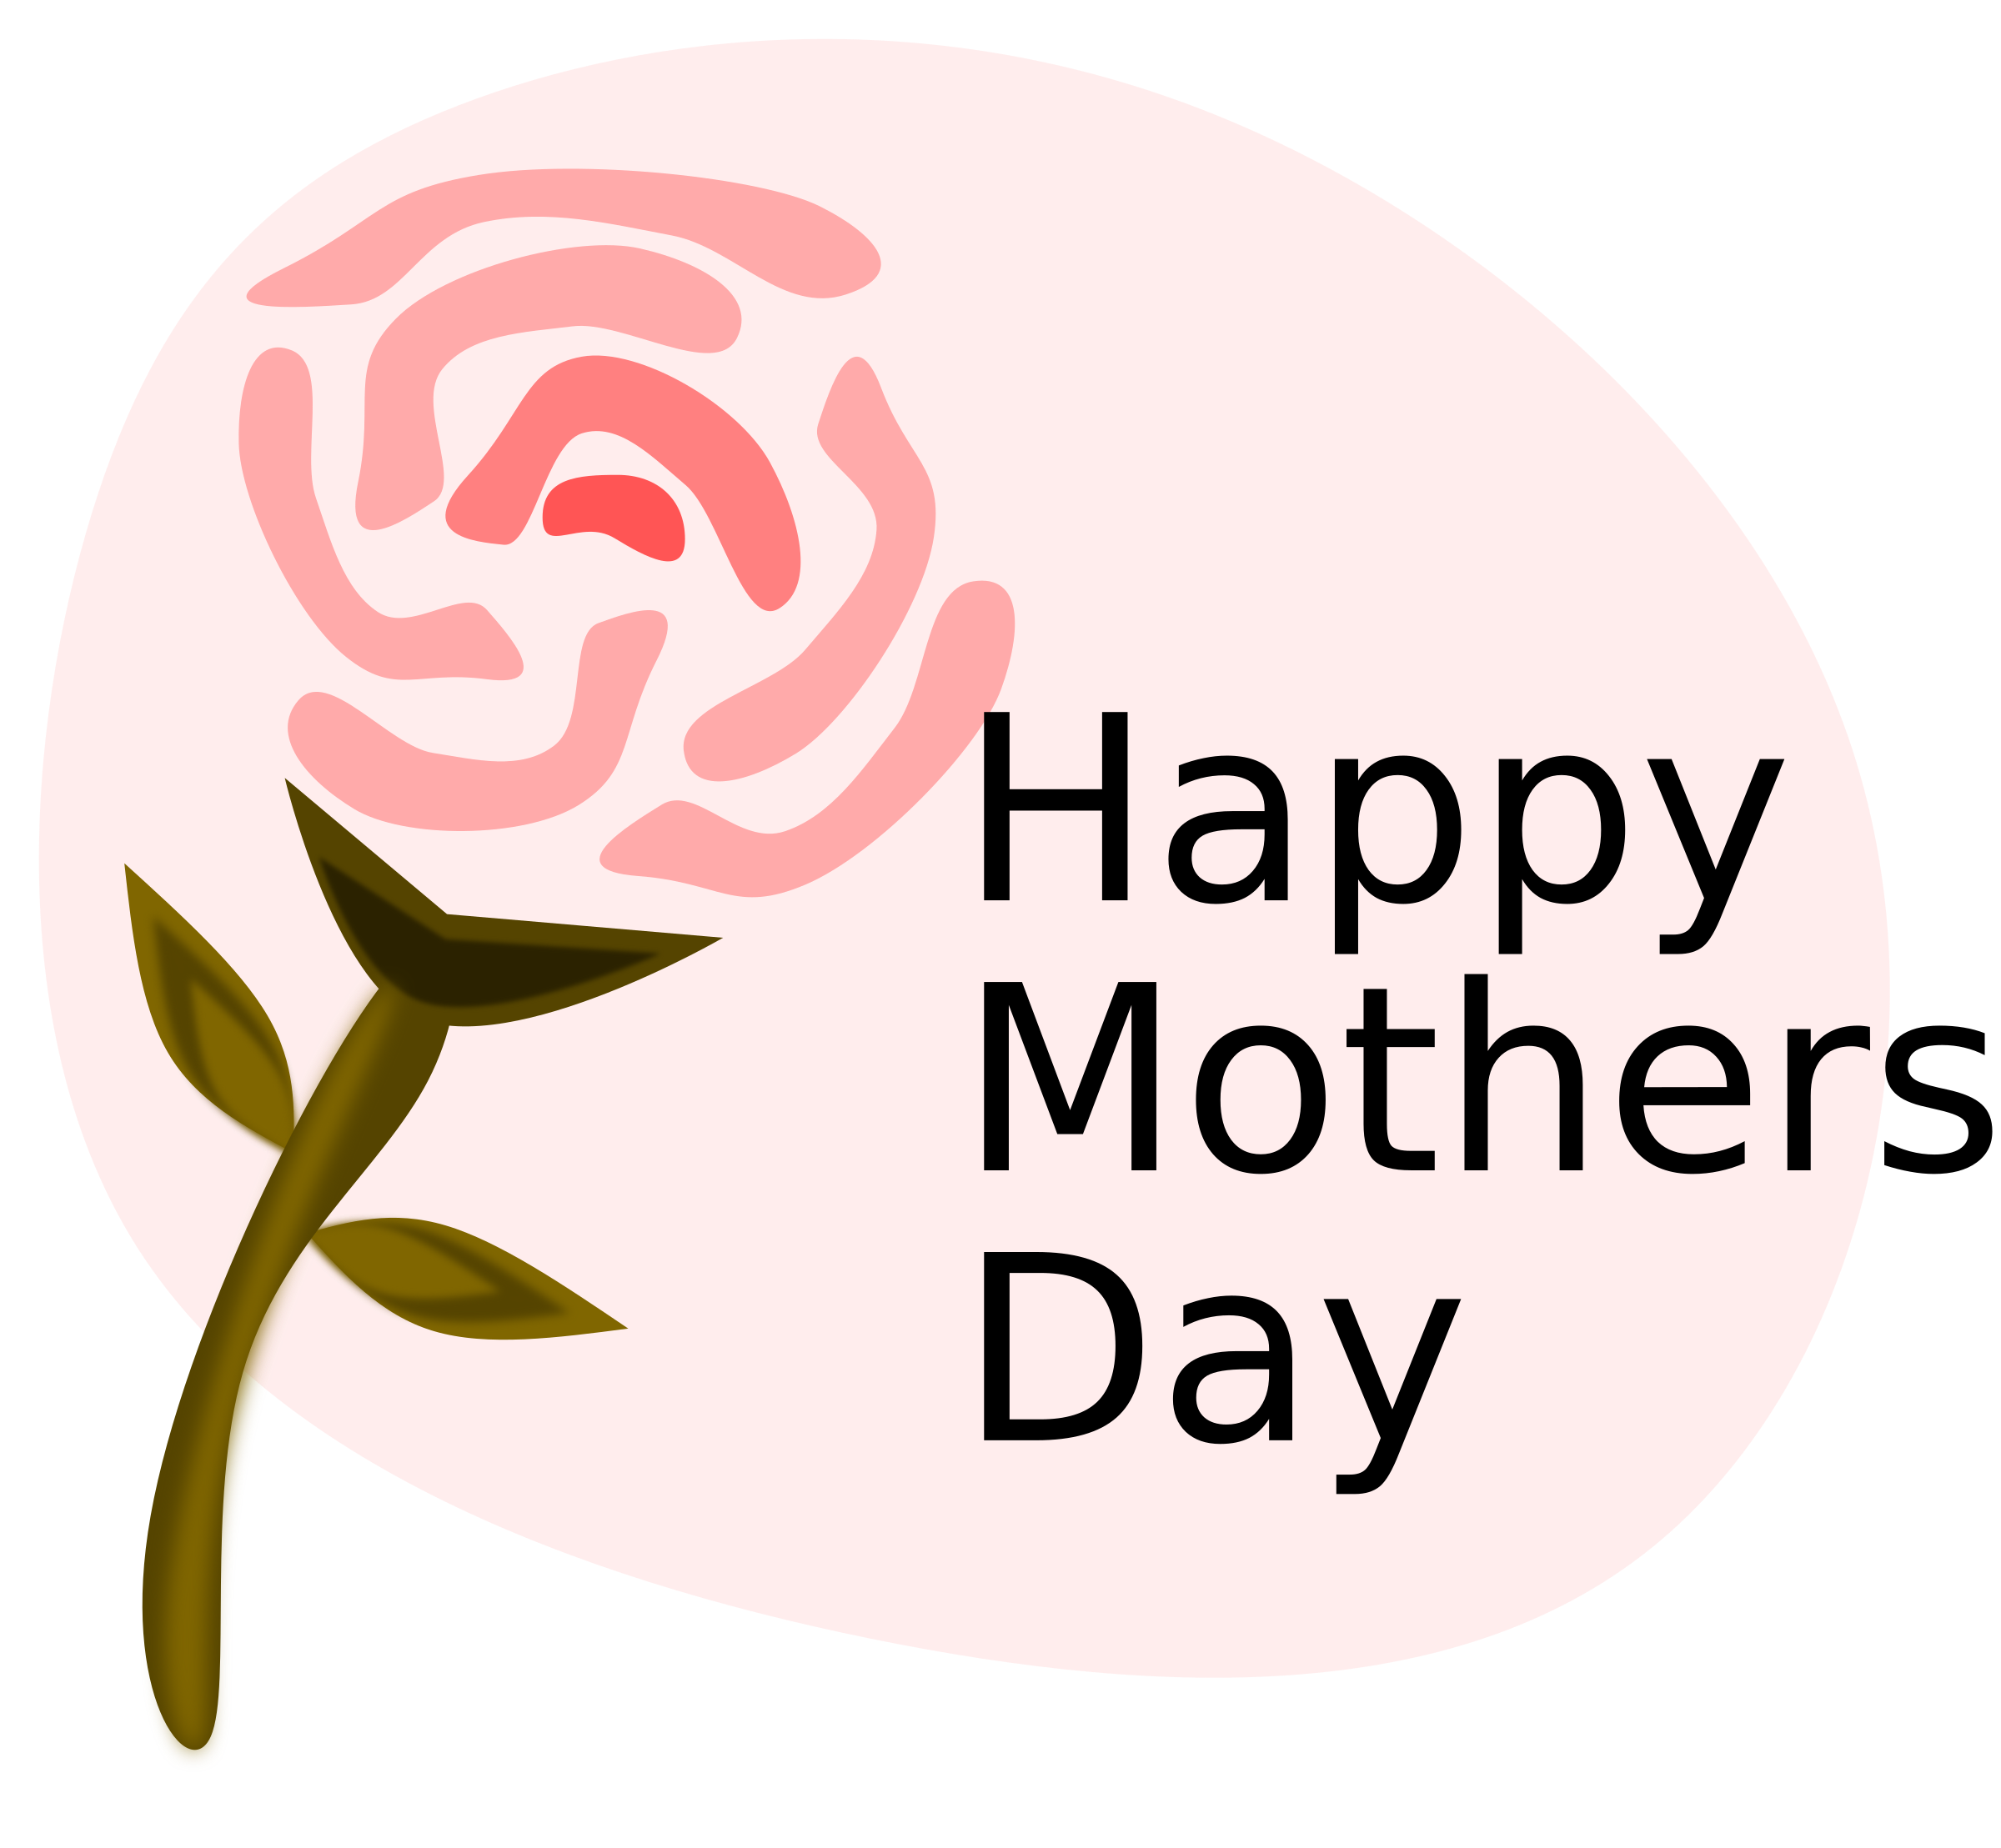 Flower clipart happy mothers day. Big image png